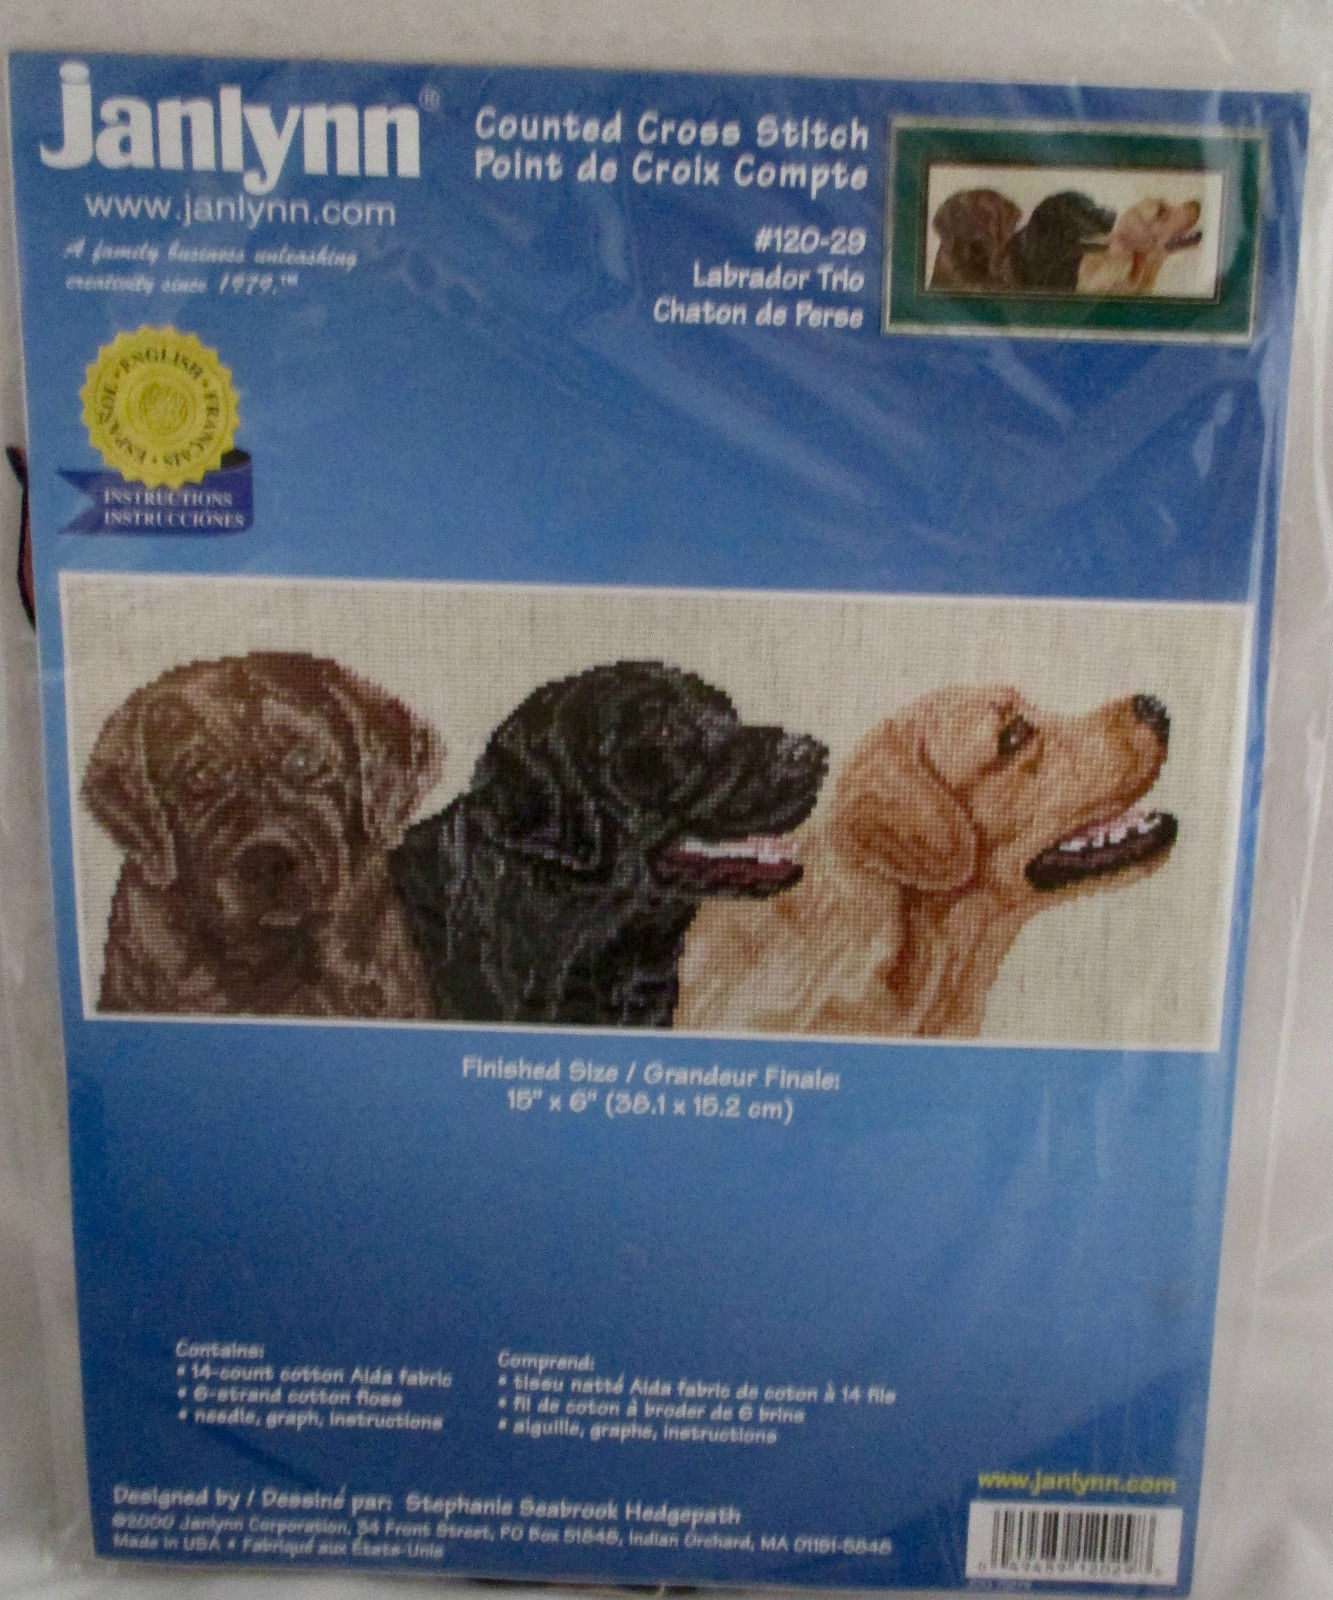 Counted Cross Stitch Labrador Trio Kit Janlynn New in Package #120-29 2000